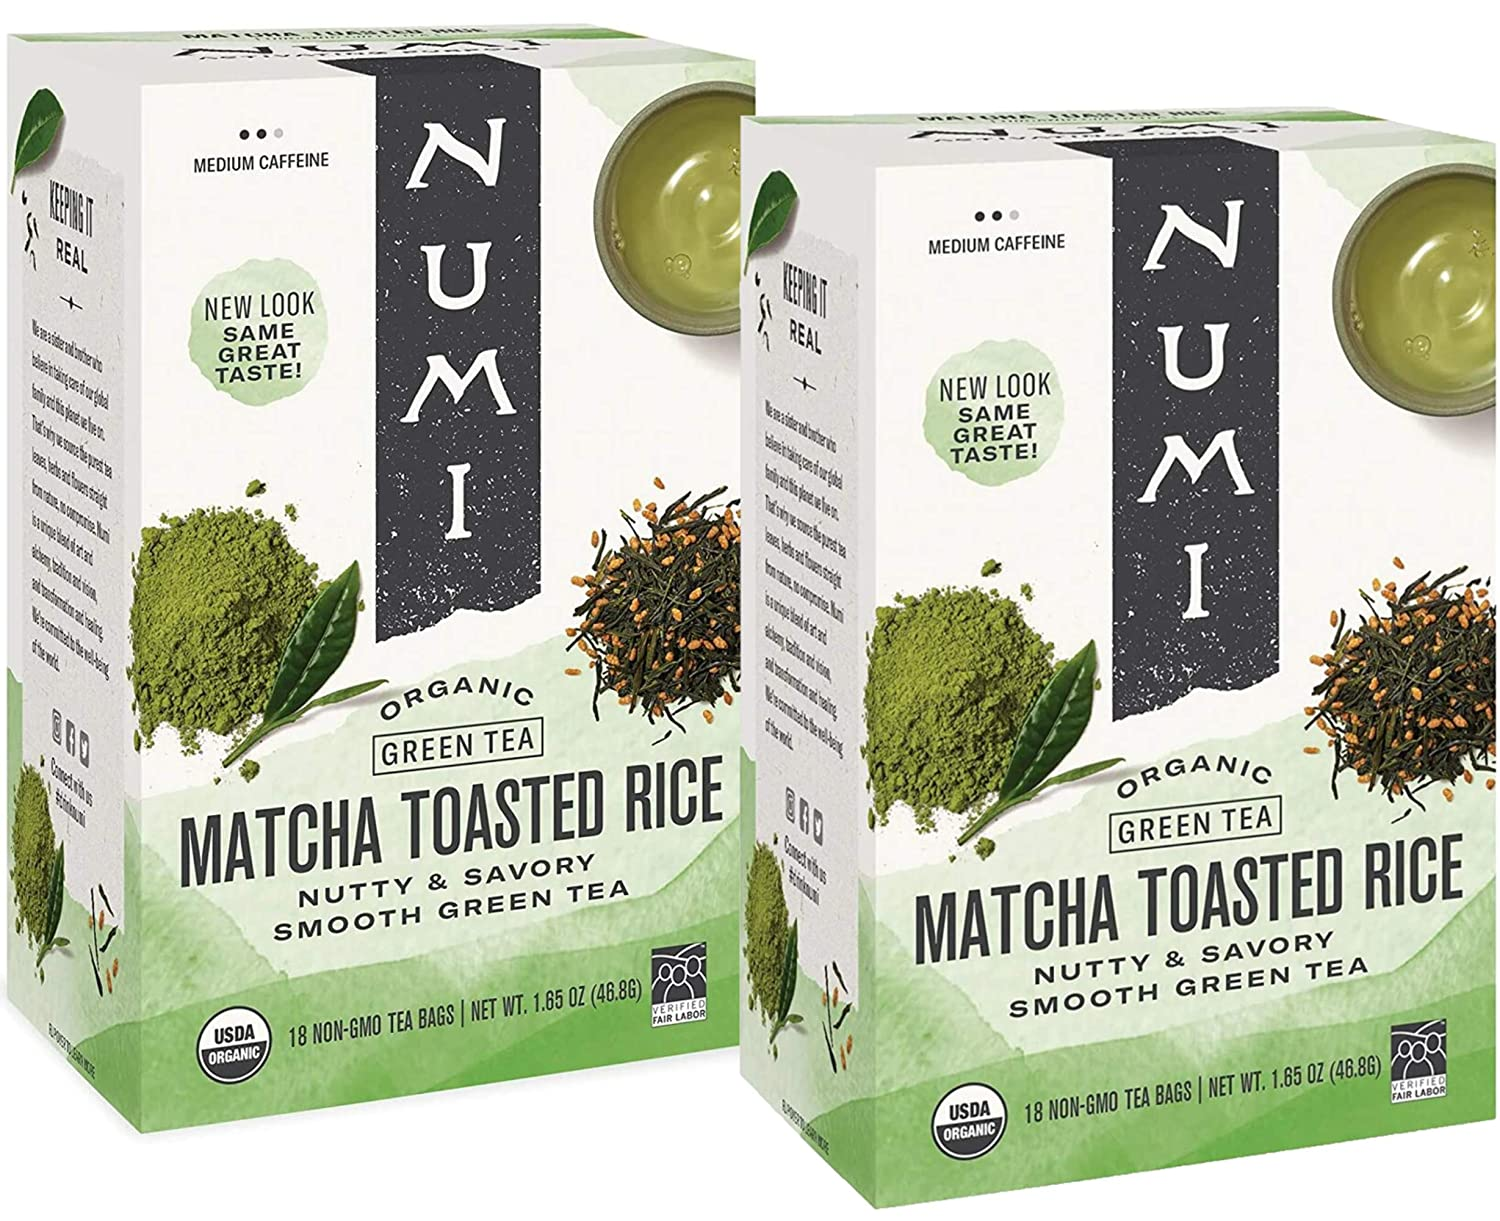 2021 autumn and winter new Numi Tea Matcha Toasted Rice Green Bags Regular dealer Pack of 18 - 2